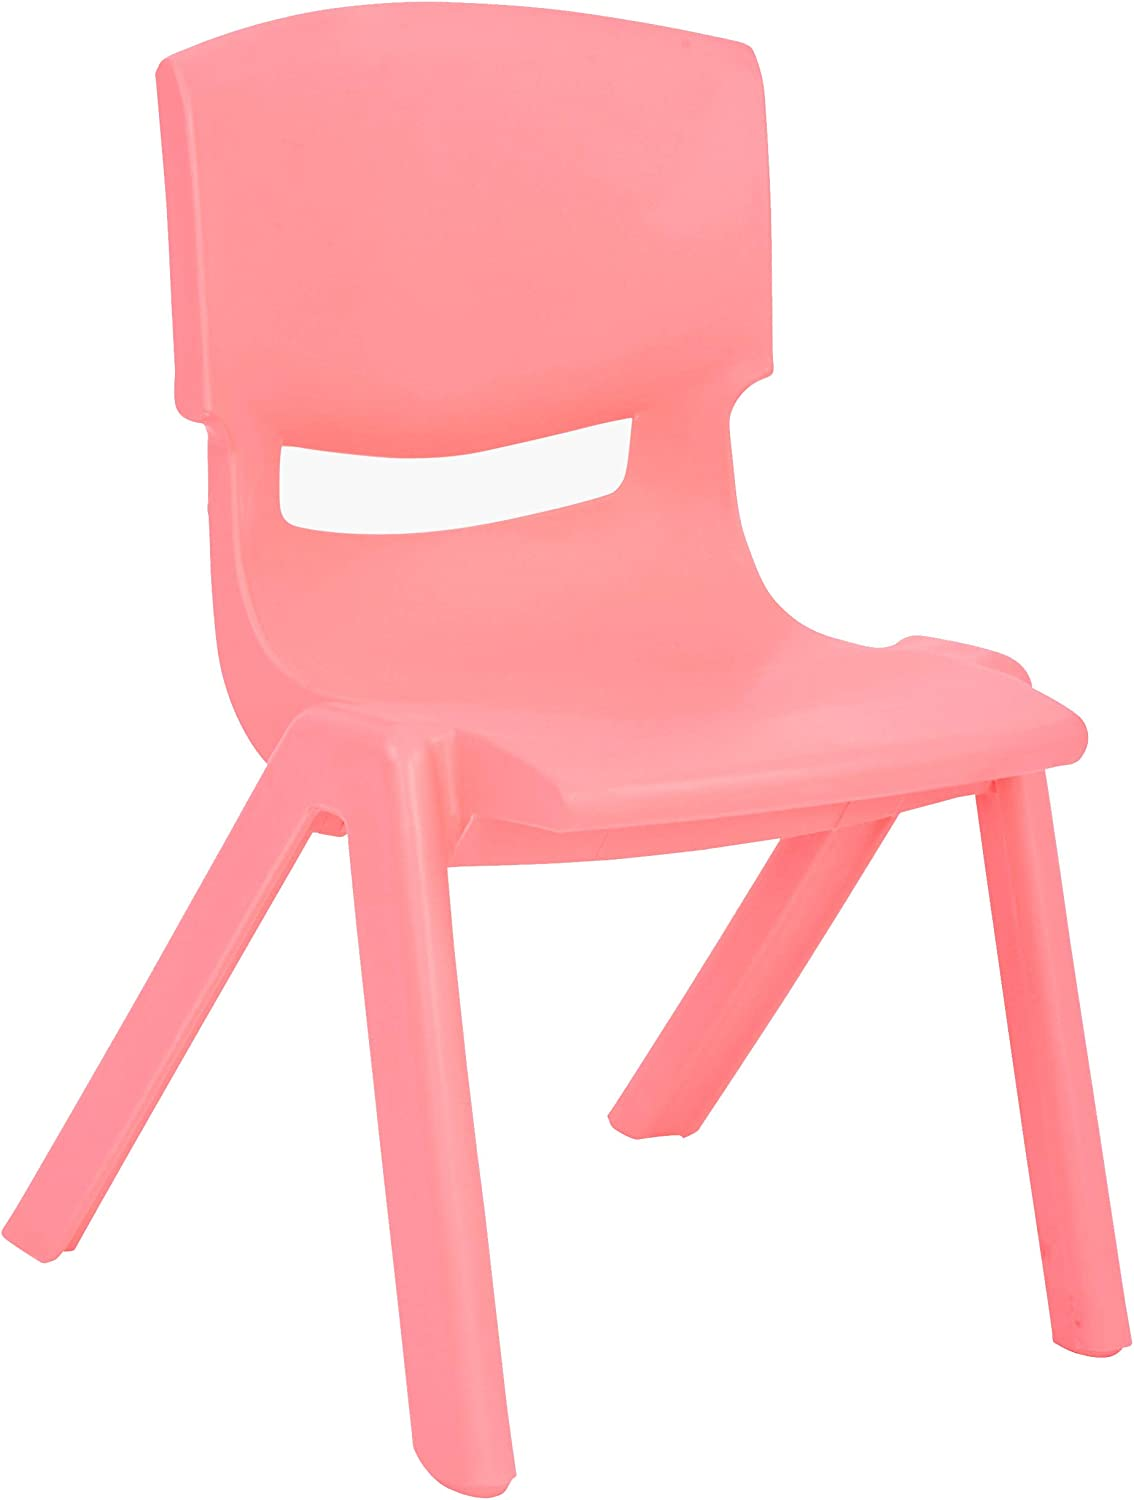 JOON Stackable Plastic Kids Learning Chairs, 20.8x12.5 Inches, The Perfect Chair for Playrooms, Schools, Daycares and Home (Pink)